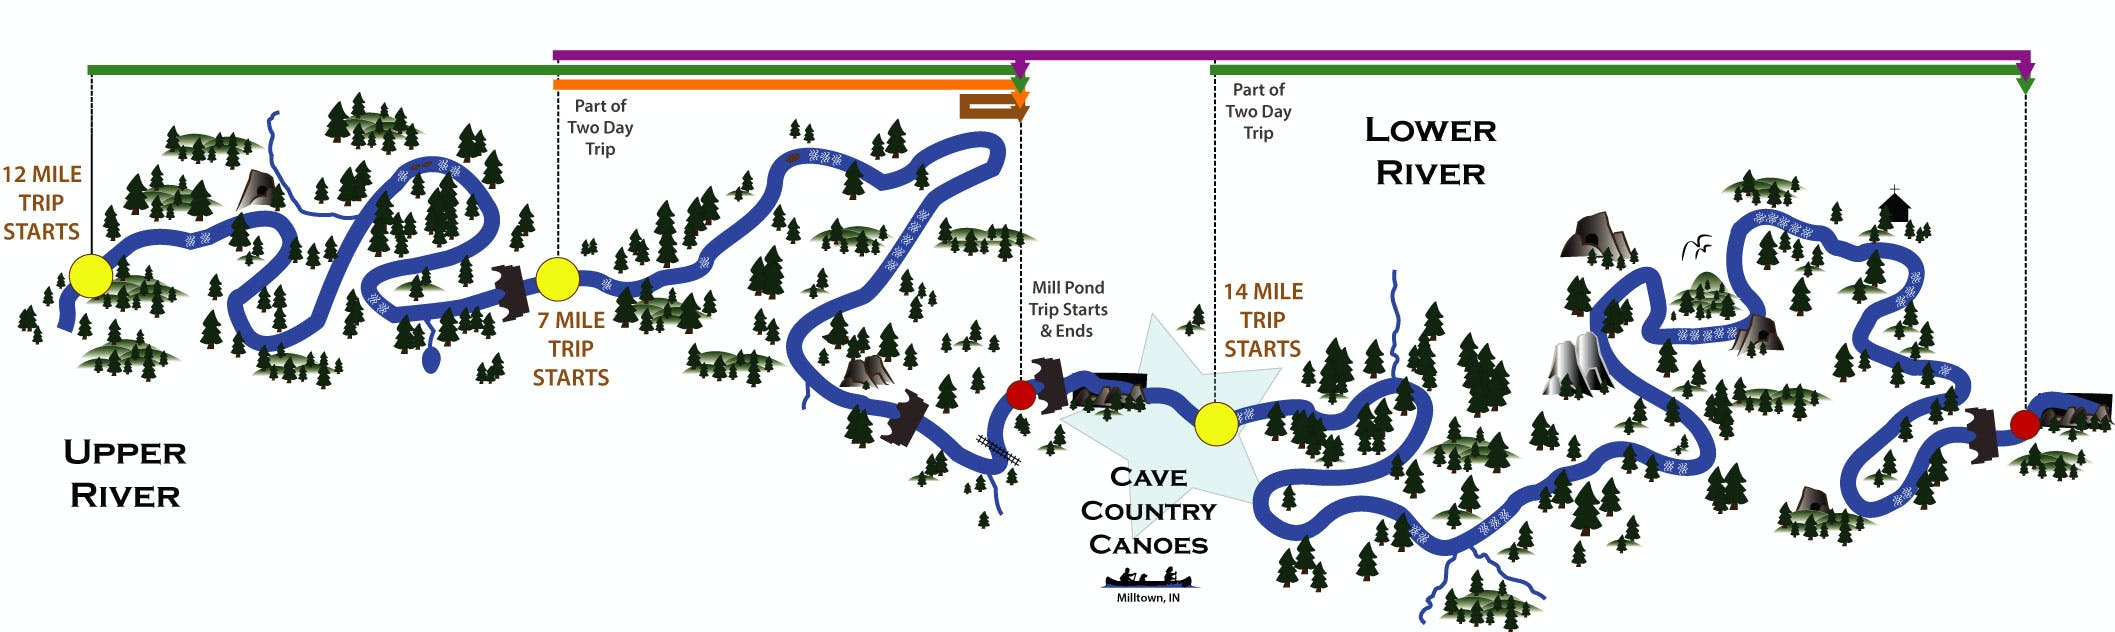 blue river map graphic